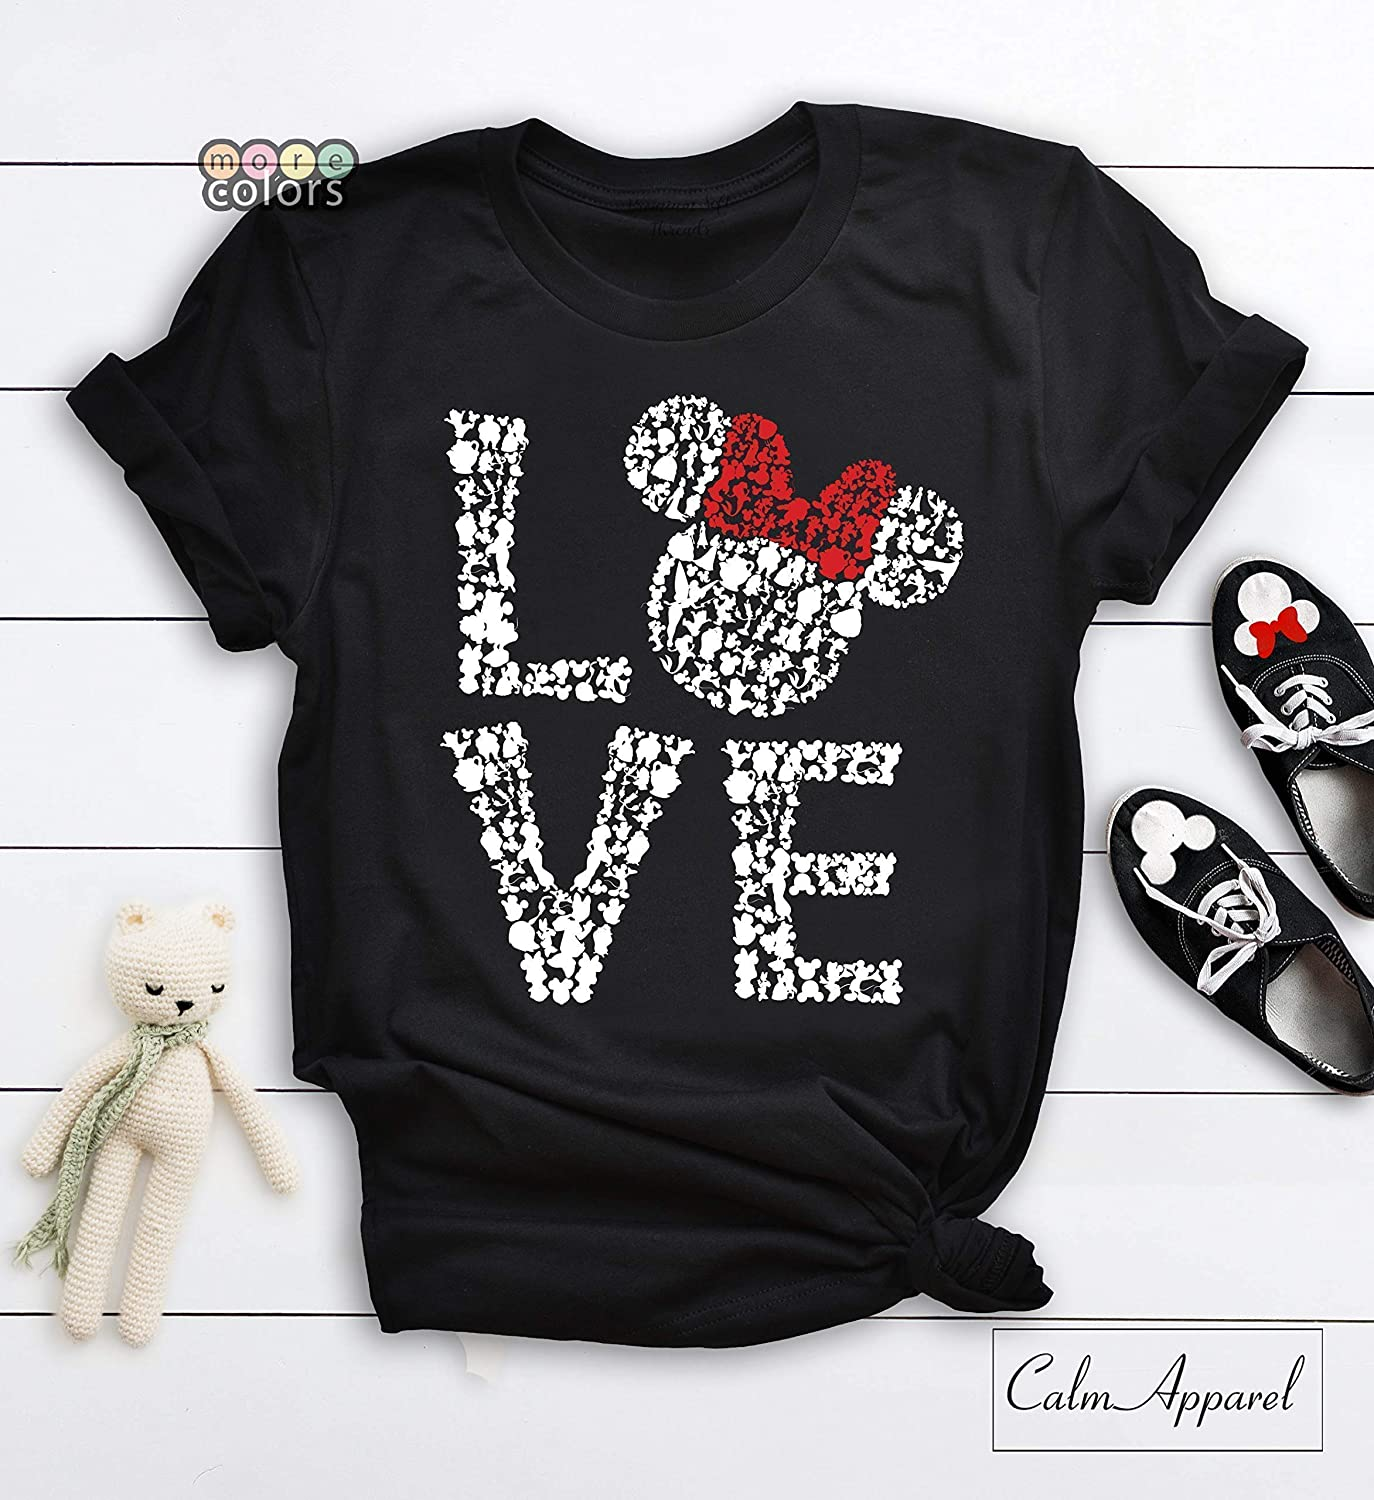 Love Shirts Love Tees Girls Youth Family Matching Tank Tops Ladies Minnie Mouse Womens T-Shirt